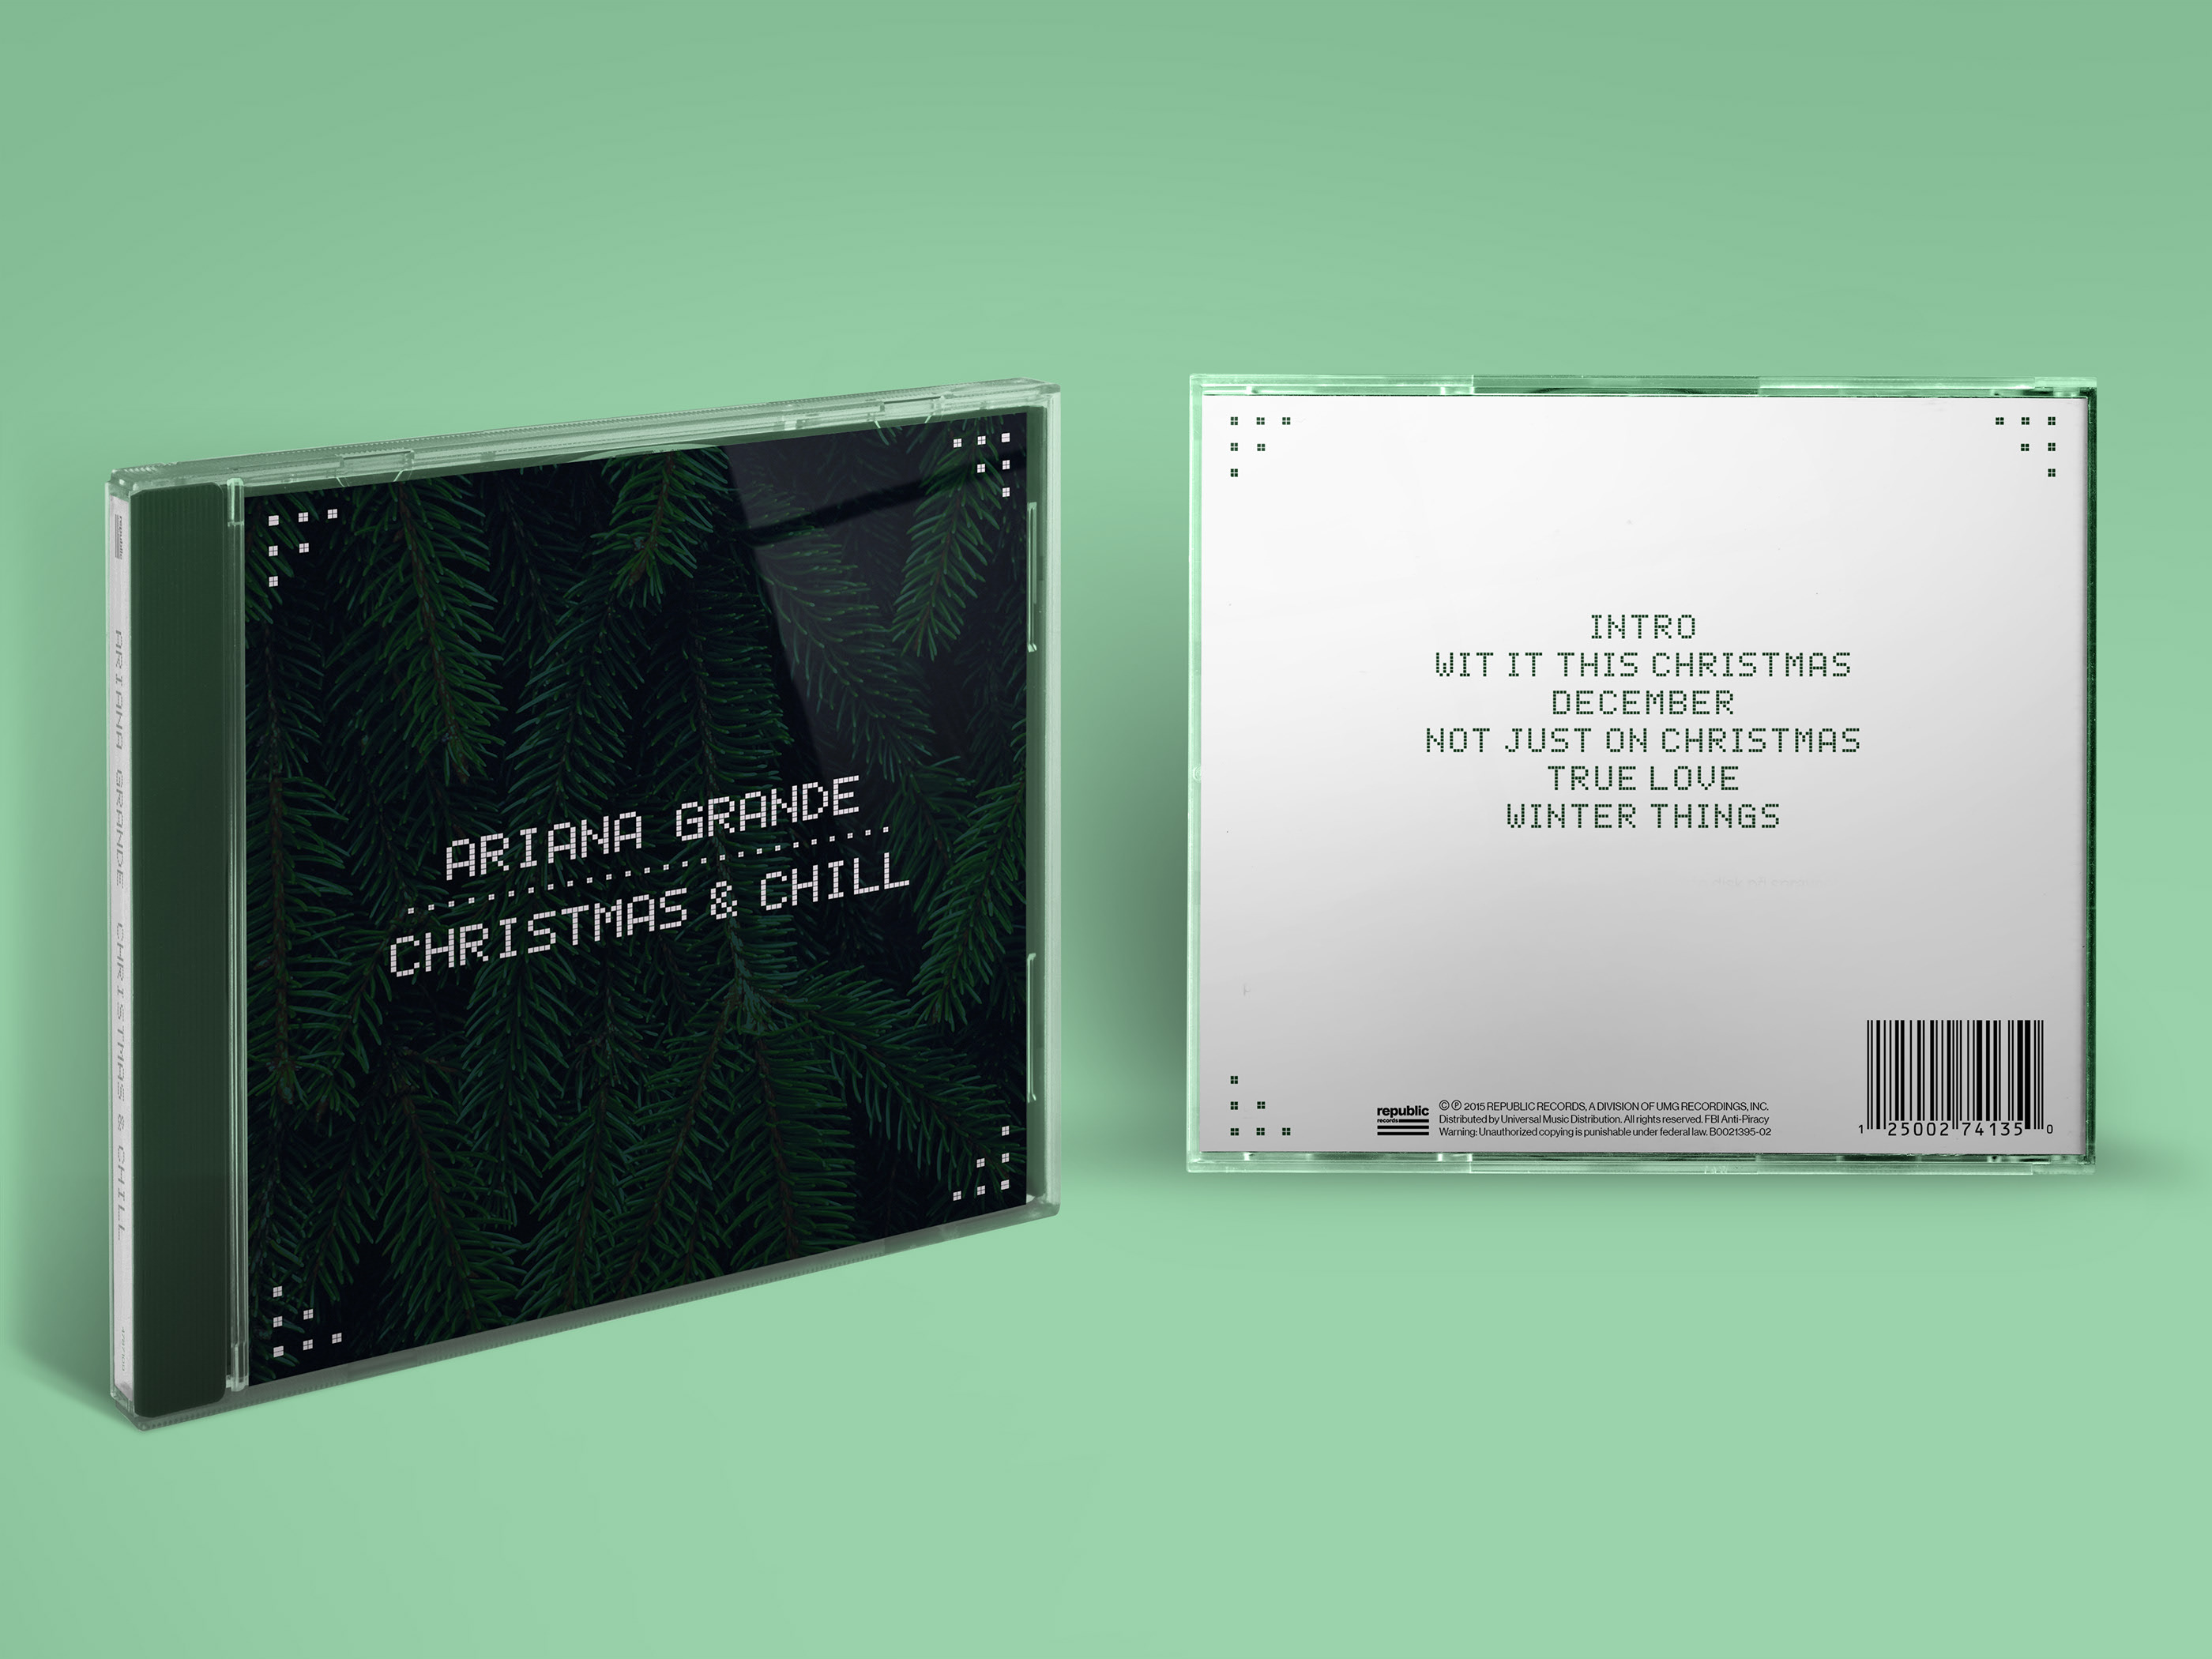 Christmas And Chill.Ariana Grande Christmas And Chill Cd Package Design On Behance